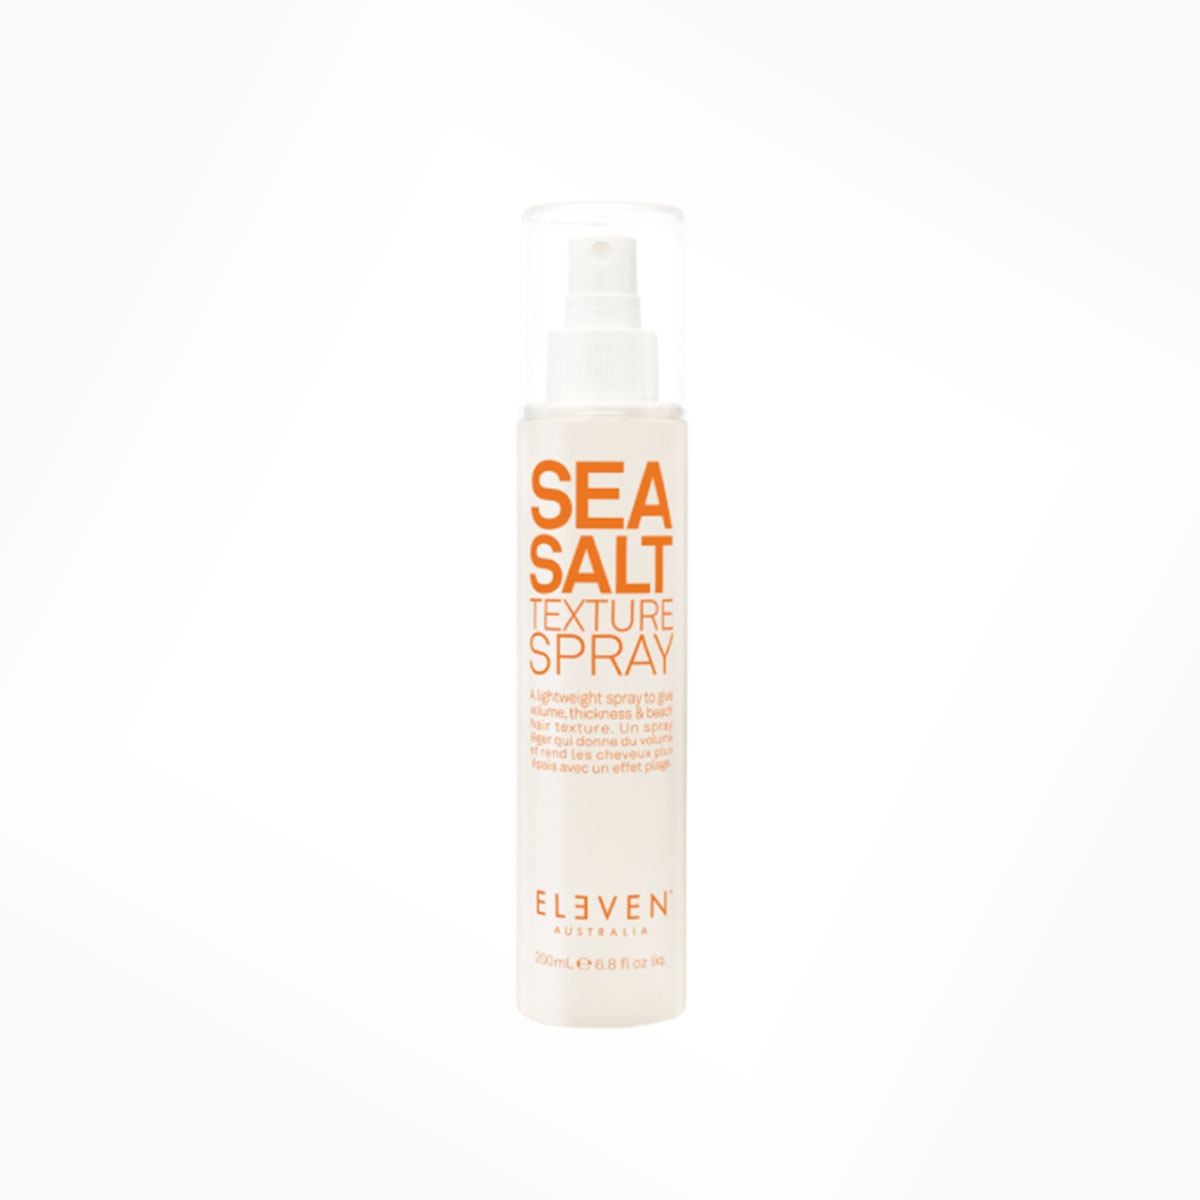 Sea Salt Texture Spray 200ml | Eleven